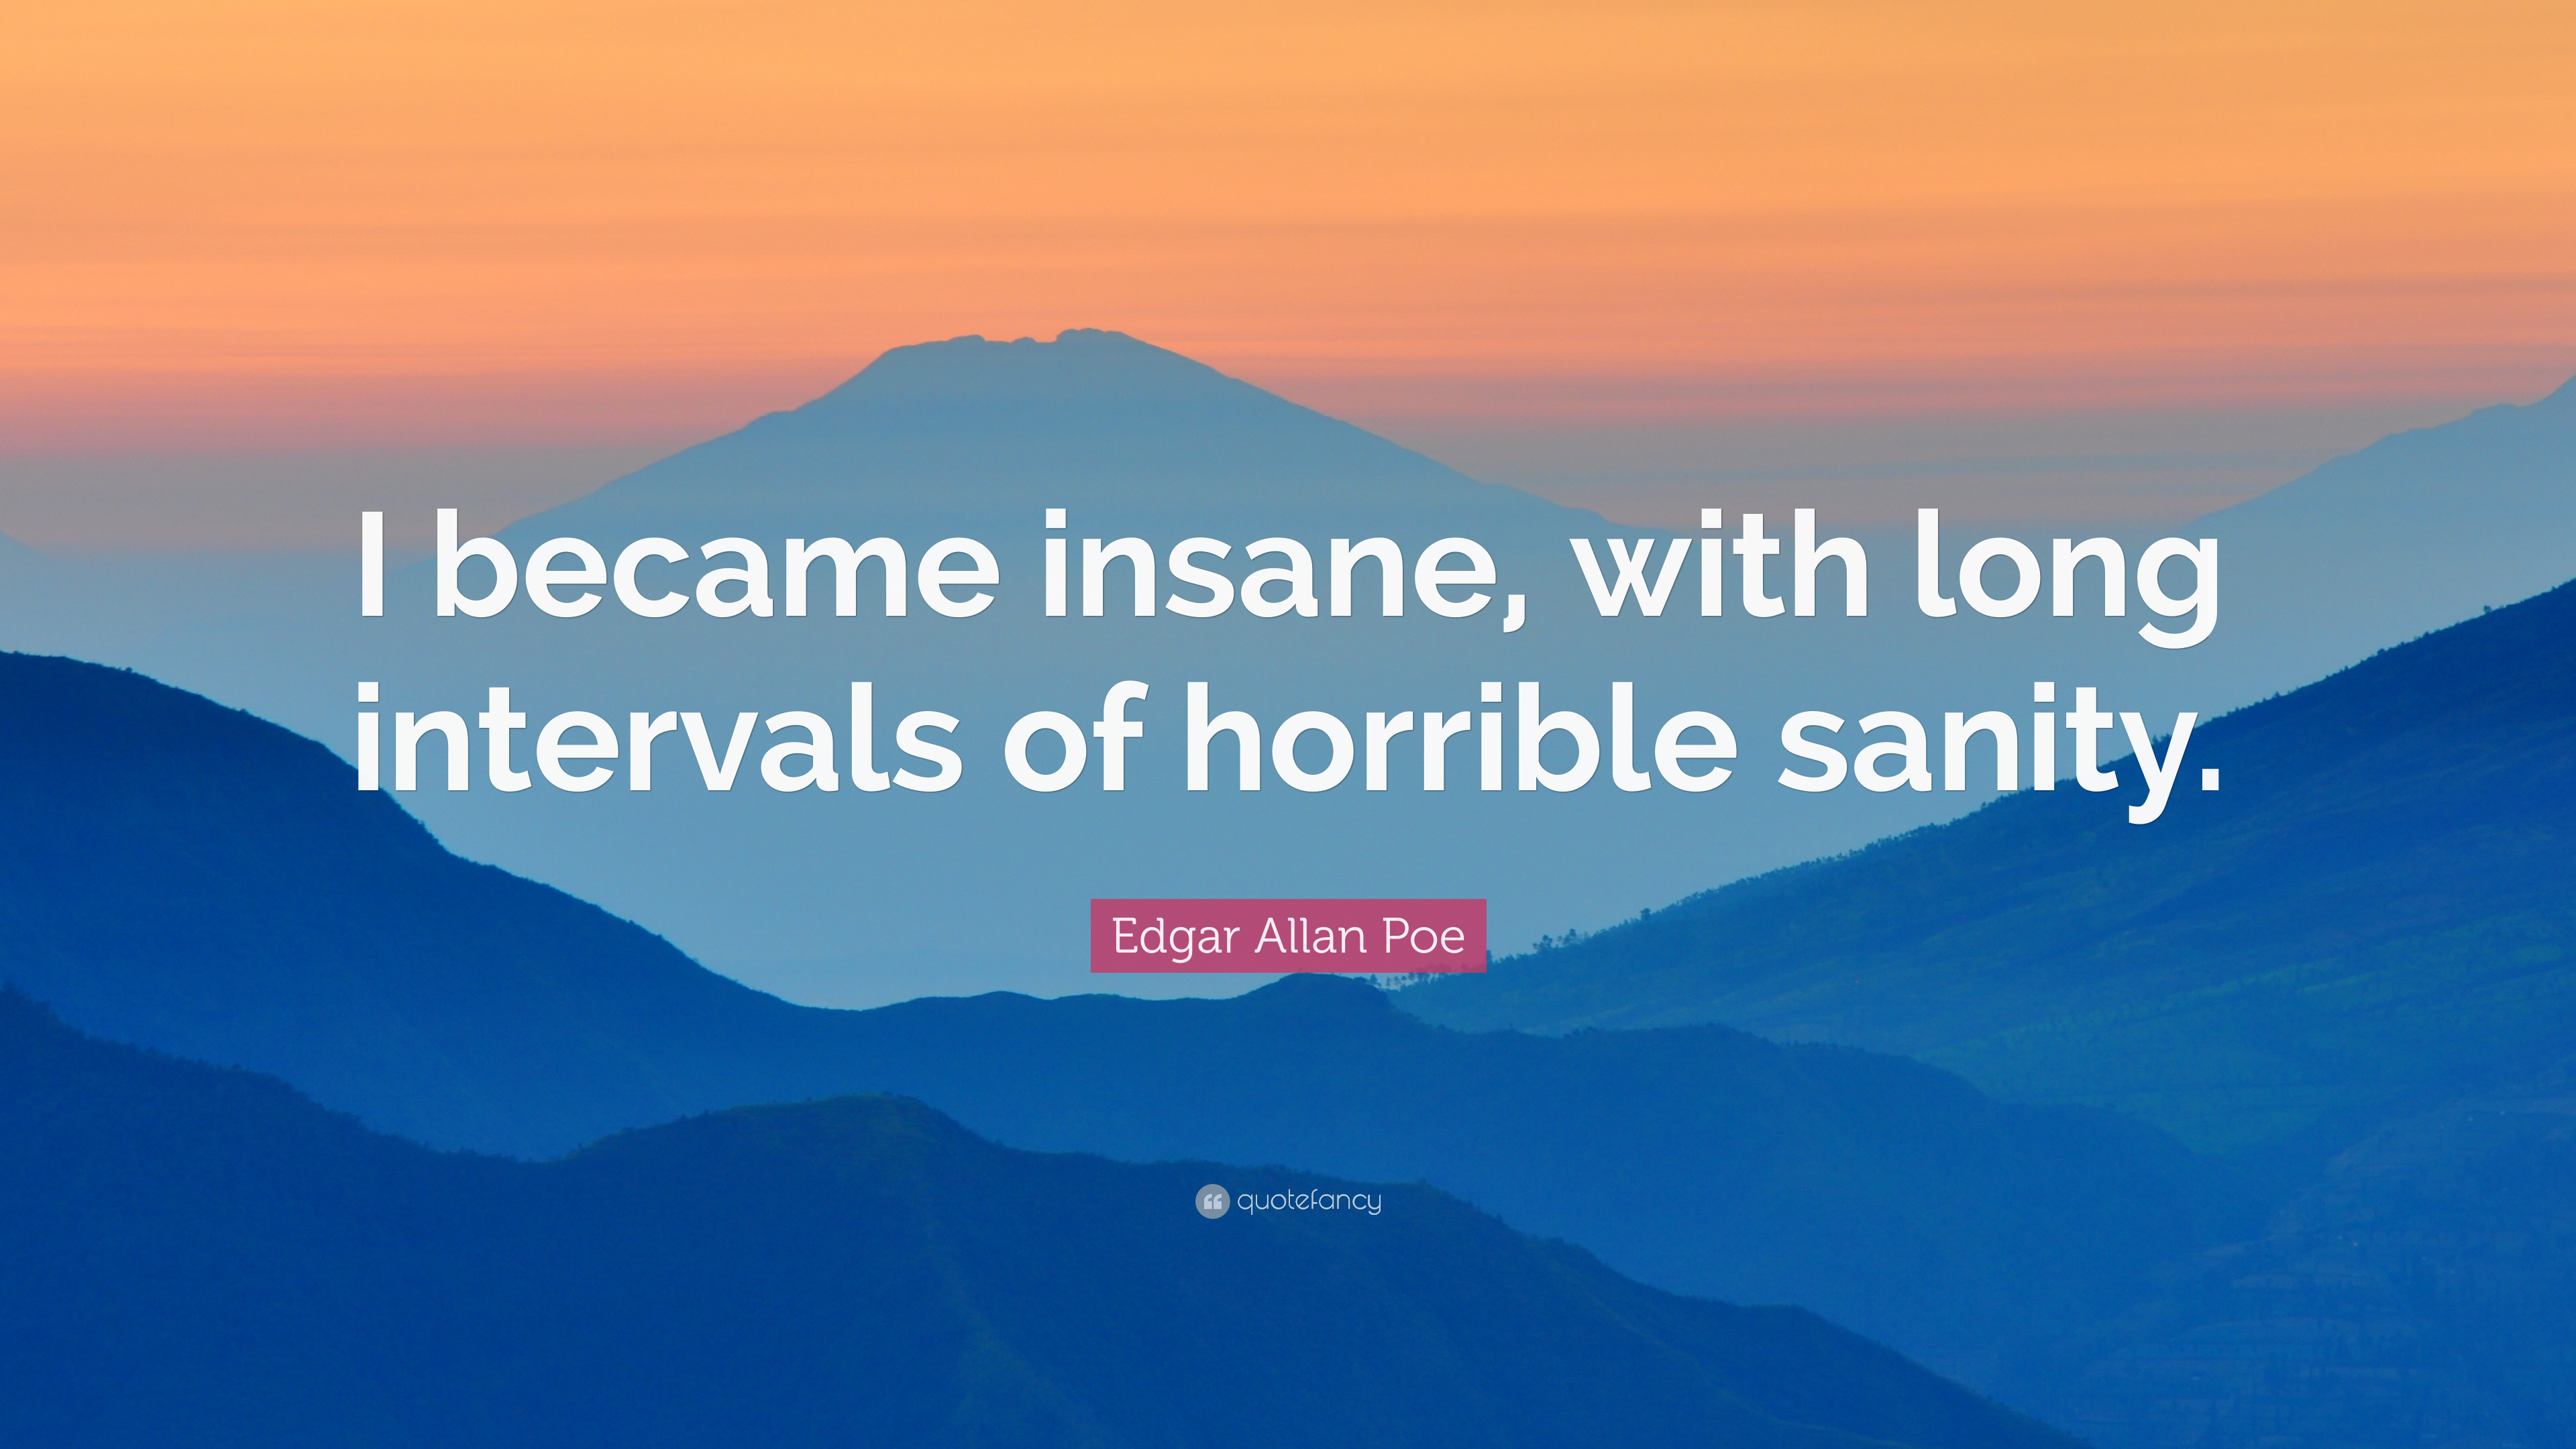 edgar allan poe quote ldquo i became insane long intervals of edgar allan poe quote ldquoi became insane long intervals of horrible sanity